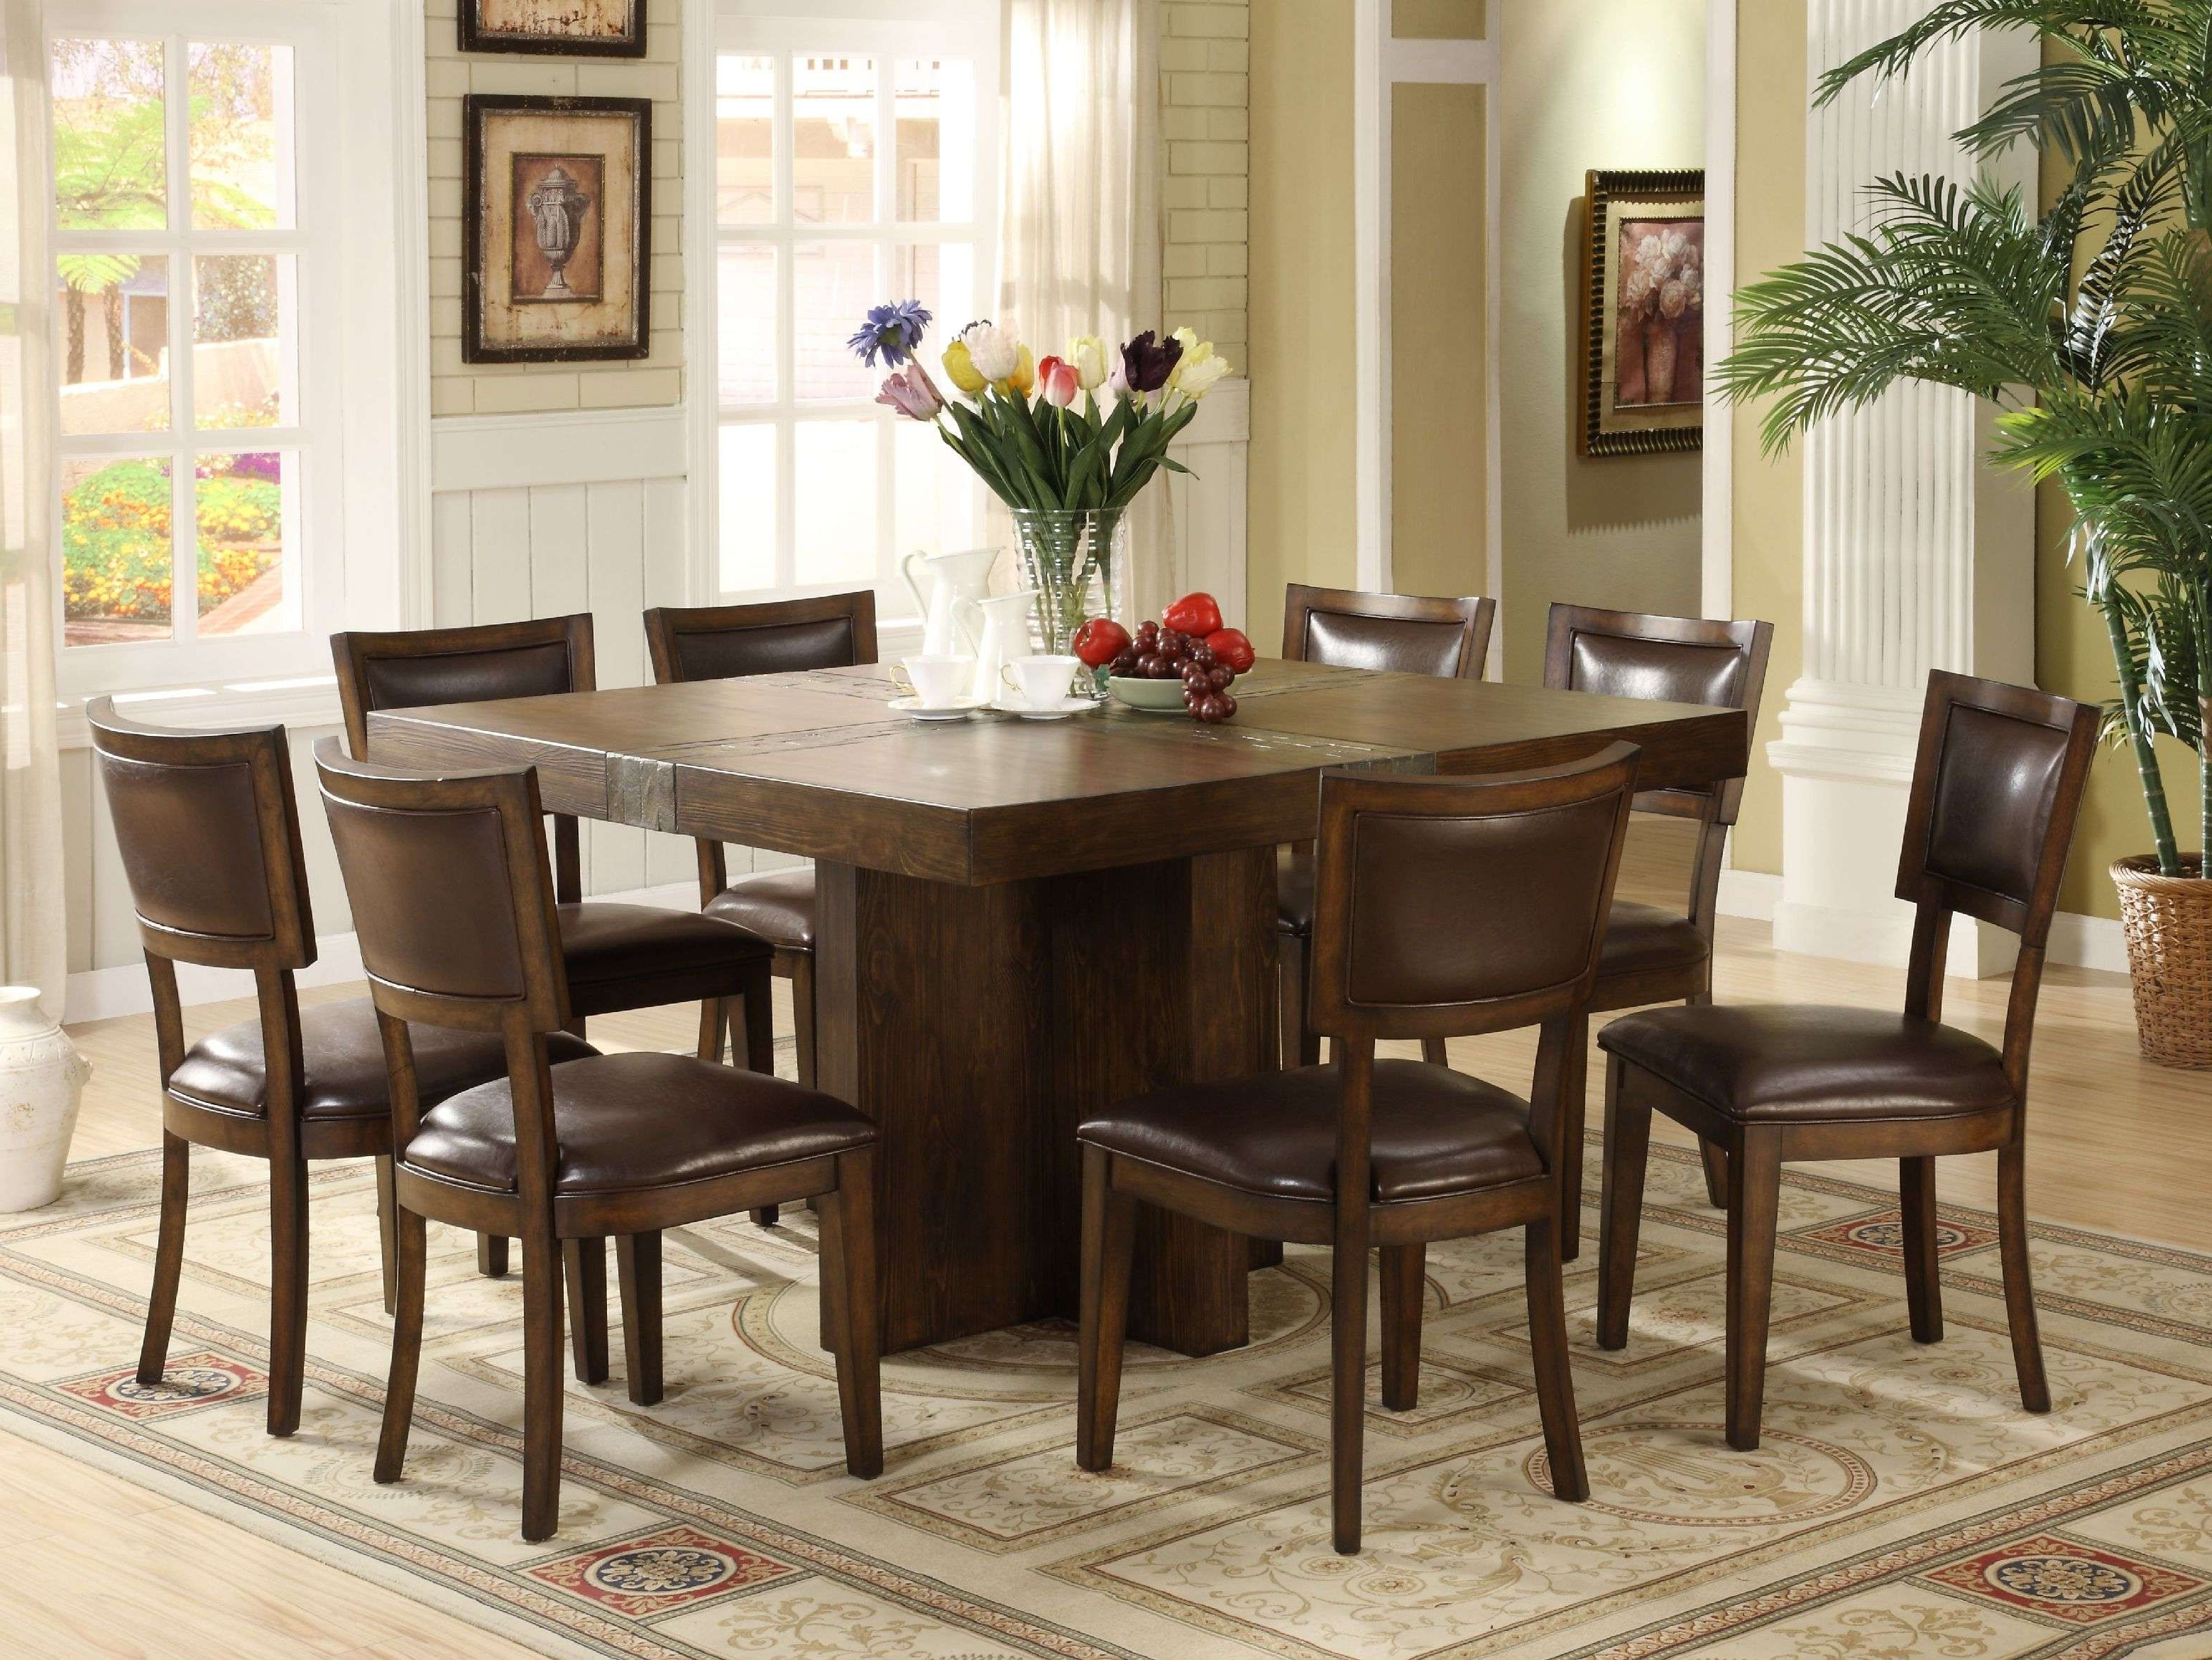 Dining Tables 8 Chairs Set With Fashionable Solid Oak Dining Room Table And 8 Chairs Unique Best 8 Seater Dining (View 8 of 25)